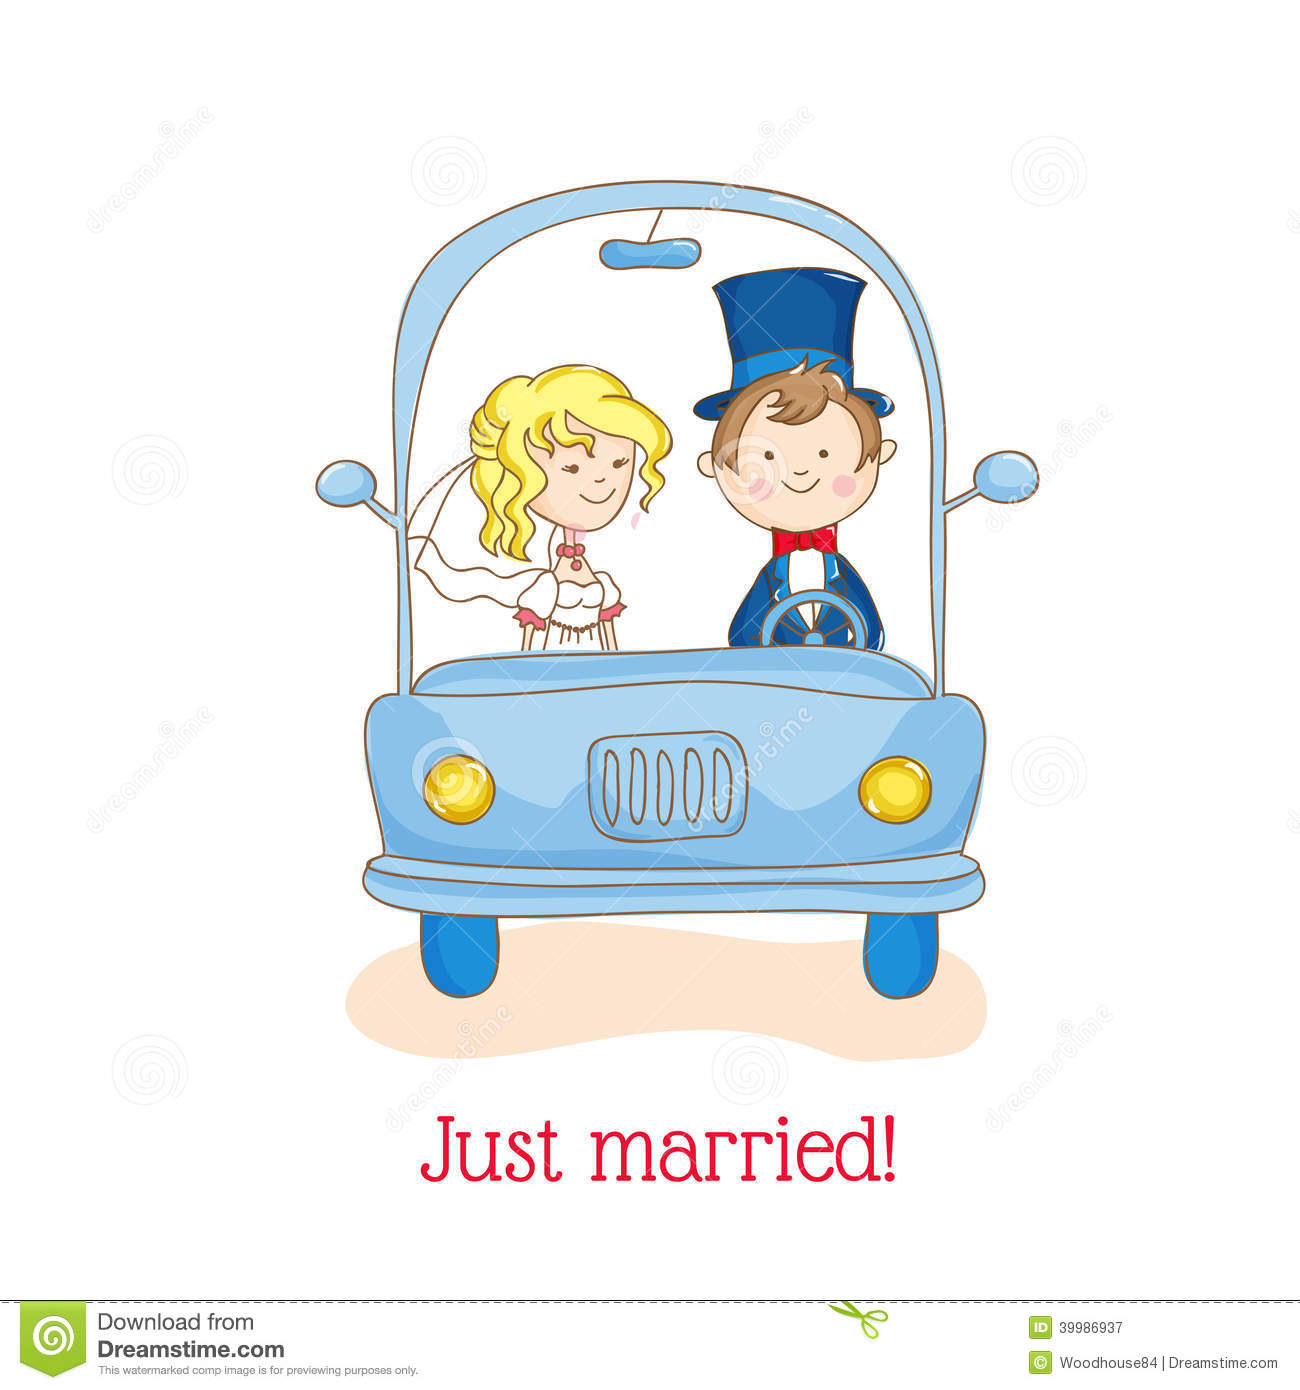 Wedding Invitation Card - Just Married Car Theme - in vector.